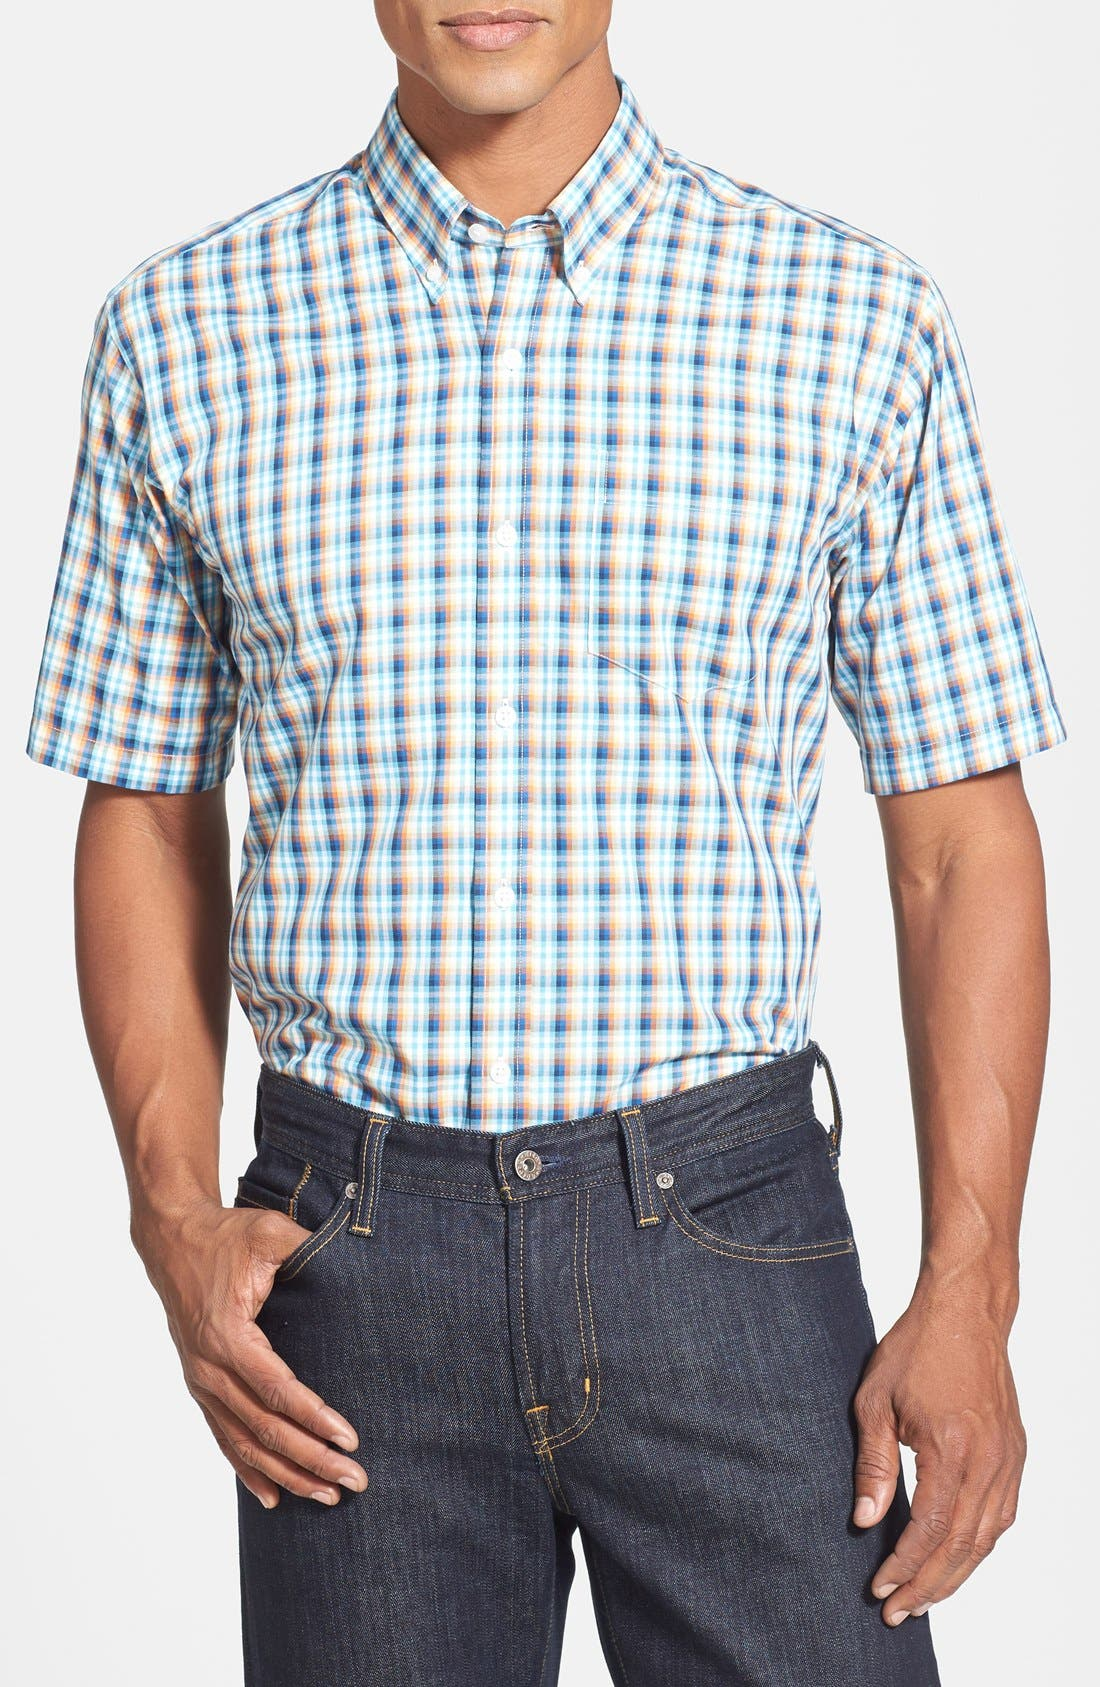 Main Image - Cutter & Buck 'Morton Road' Classic Fit Short Sleeve Plaid Sport Shirt (Big & Tall)